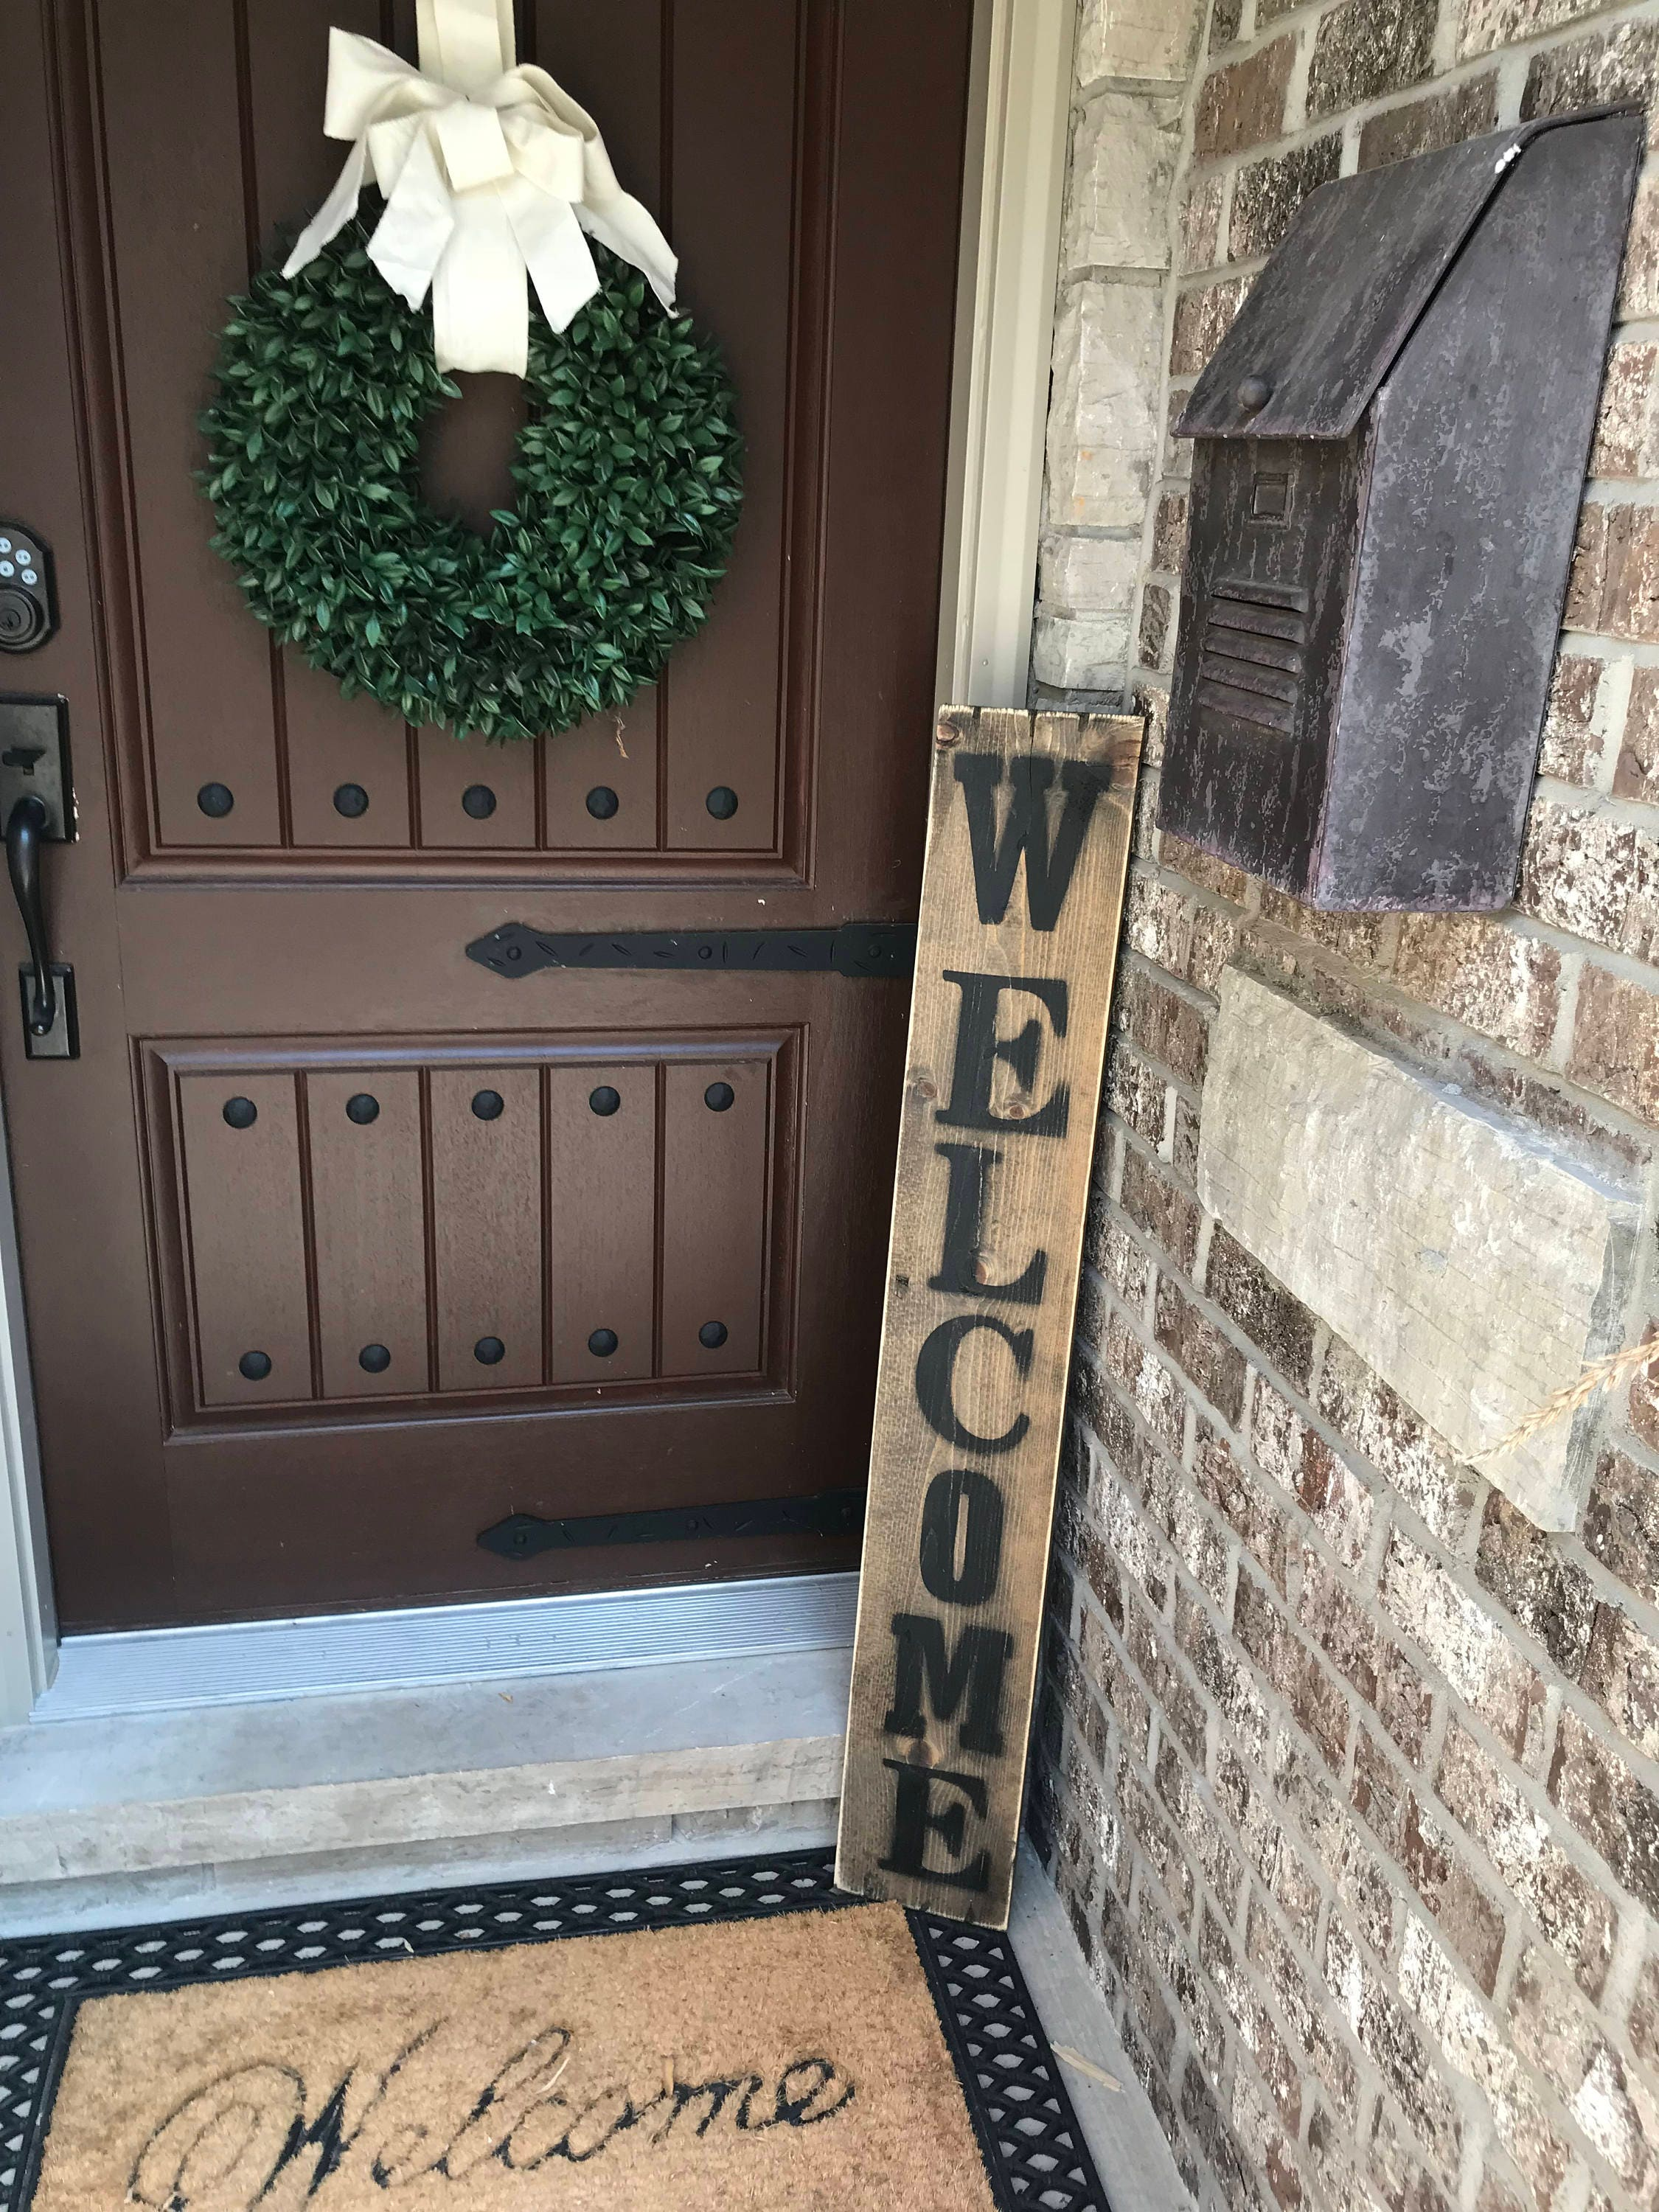 Exceptionnel Large Welcome Signs, Rustic Wood Welcome Signs, Welcome Porch Signs, Front  Porch Decor, Rustic Welcome Signs, Front Porch Wood Welcome Signs